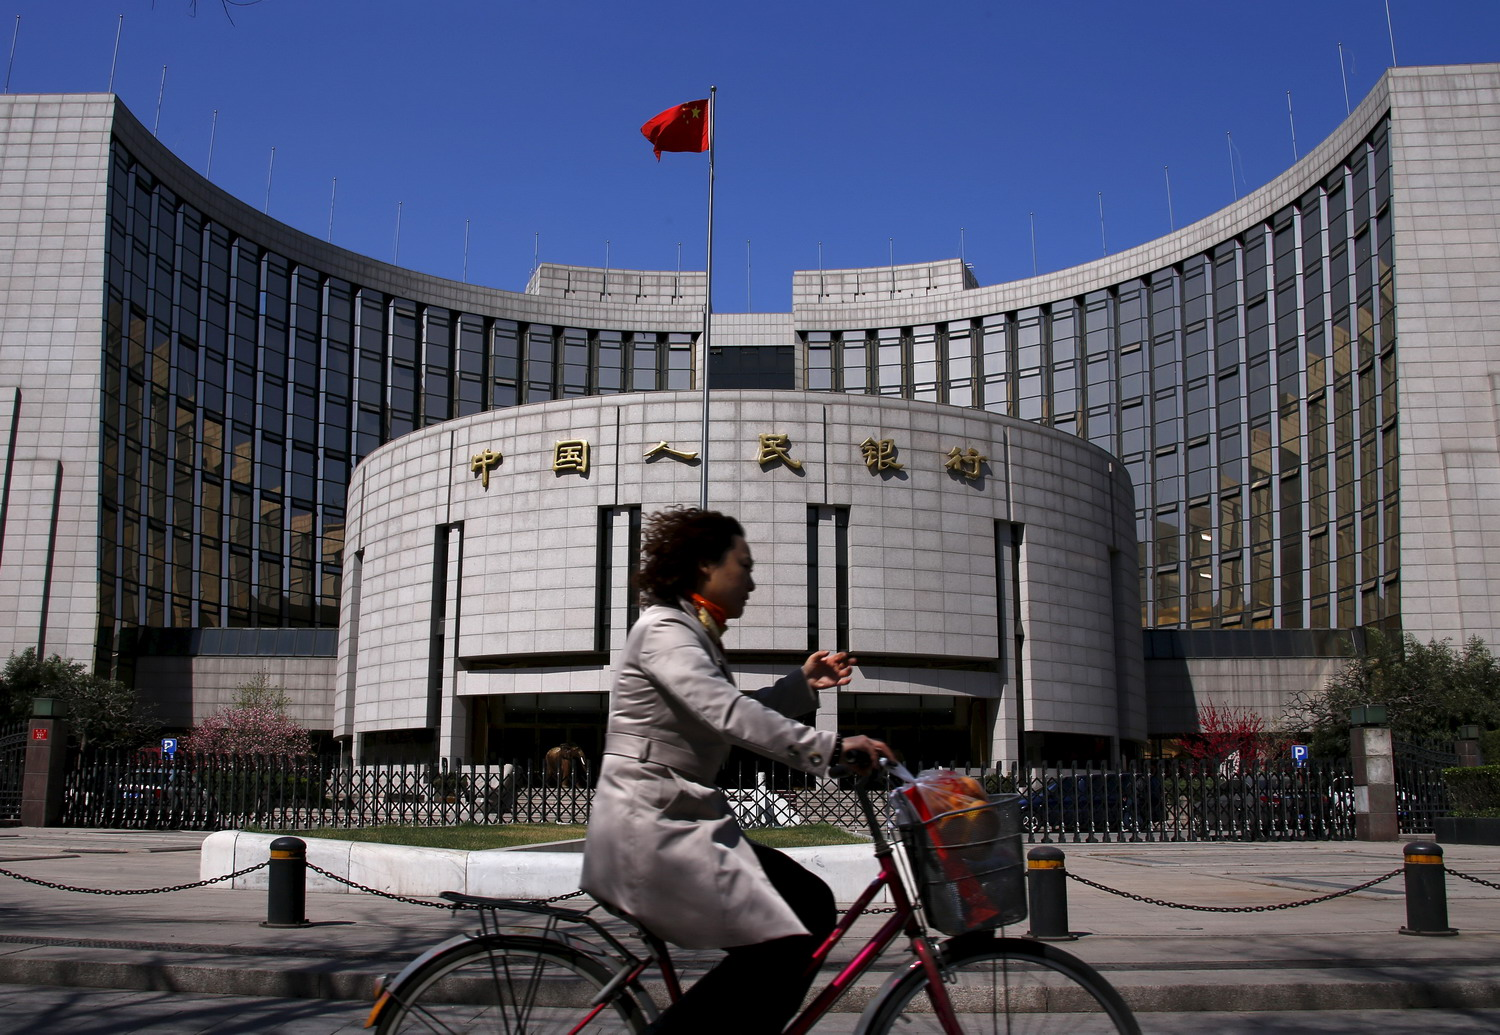 China c.bank tries to soothe global markets, says no reason for yuan to fall further